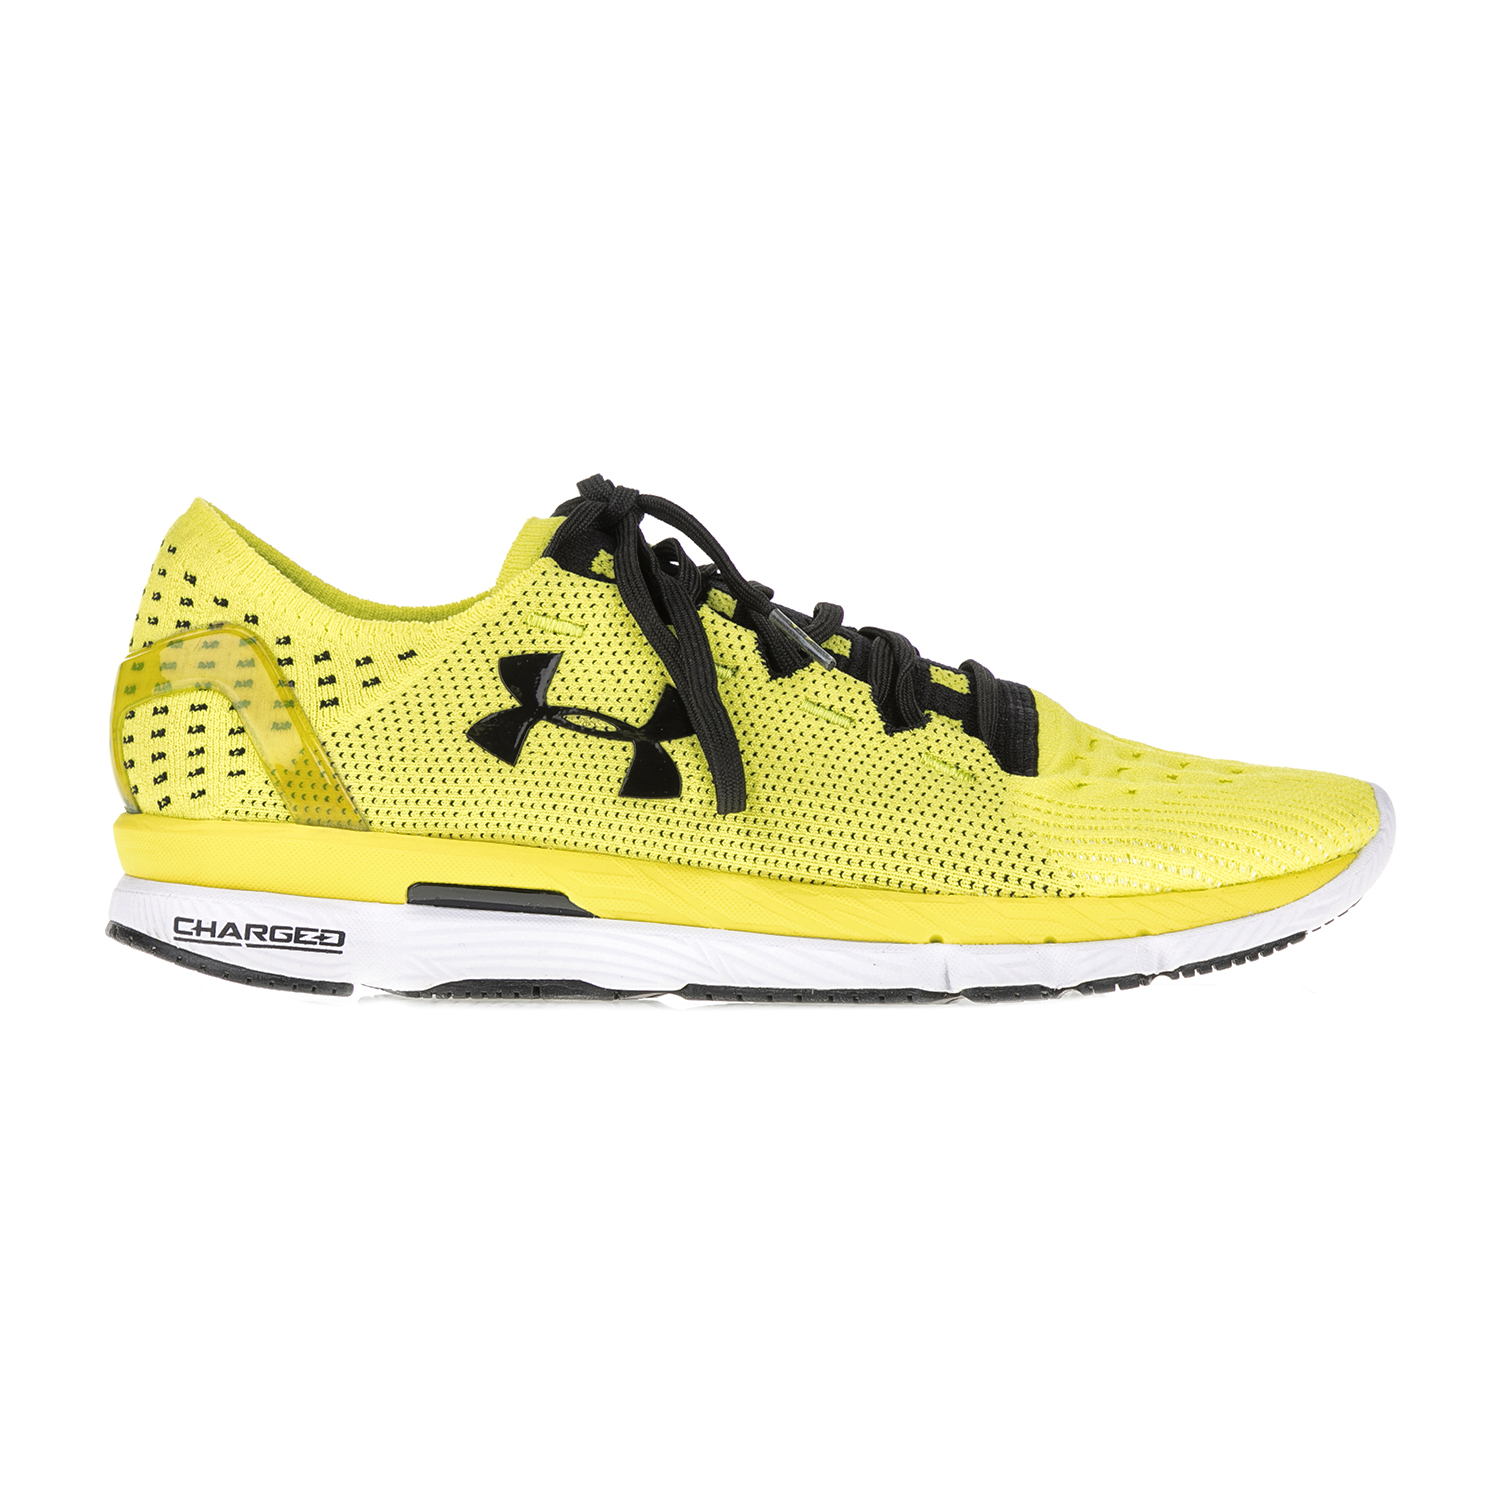 UNDER ARMOUR – Ανδρικά αθλητικά παπούτσια UNDER ARMOUR SPEEDFORM SLINGSHOT κίτρινα-μαύρα